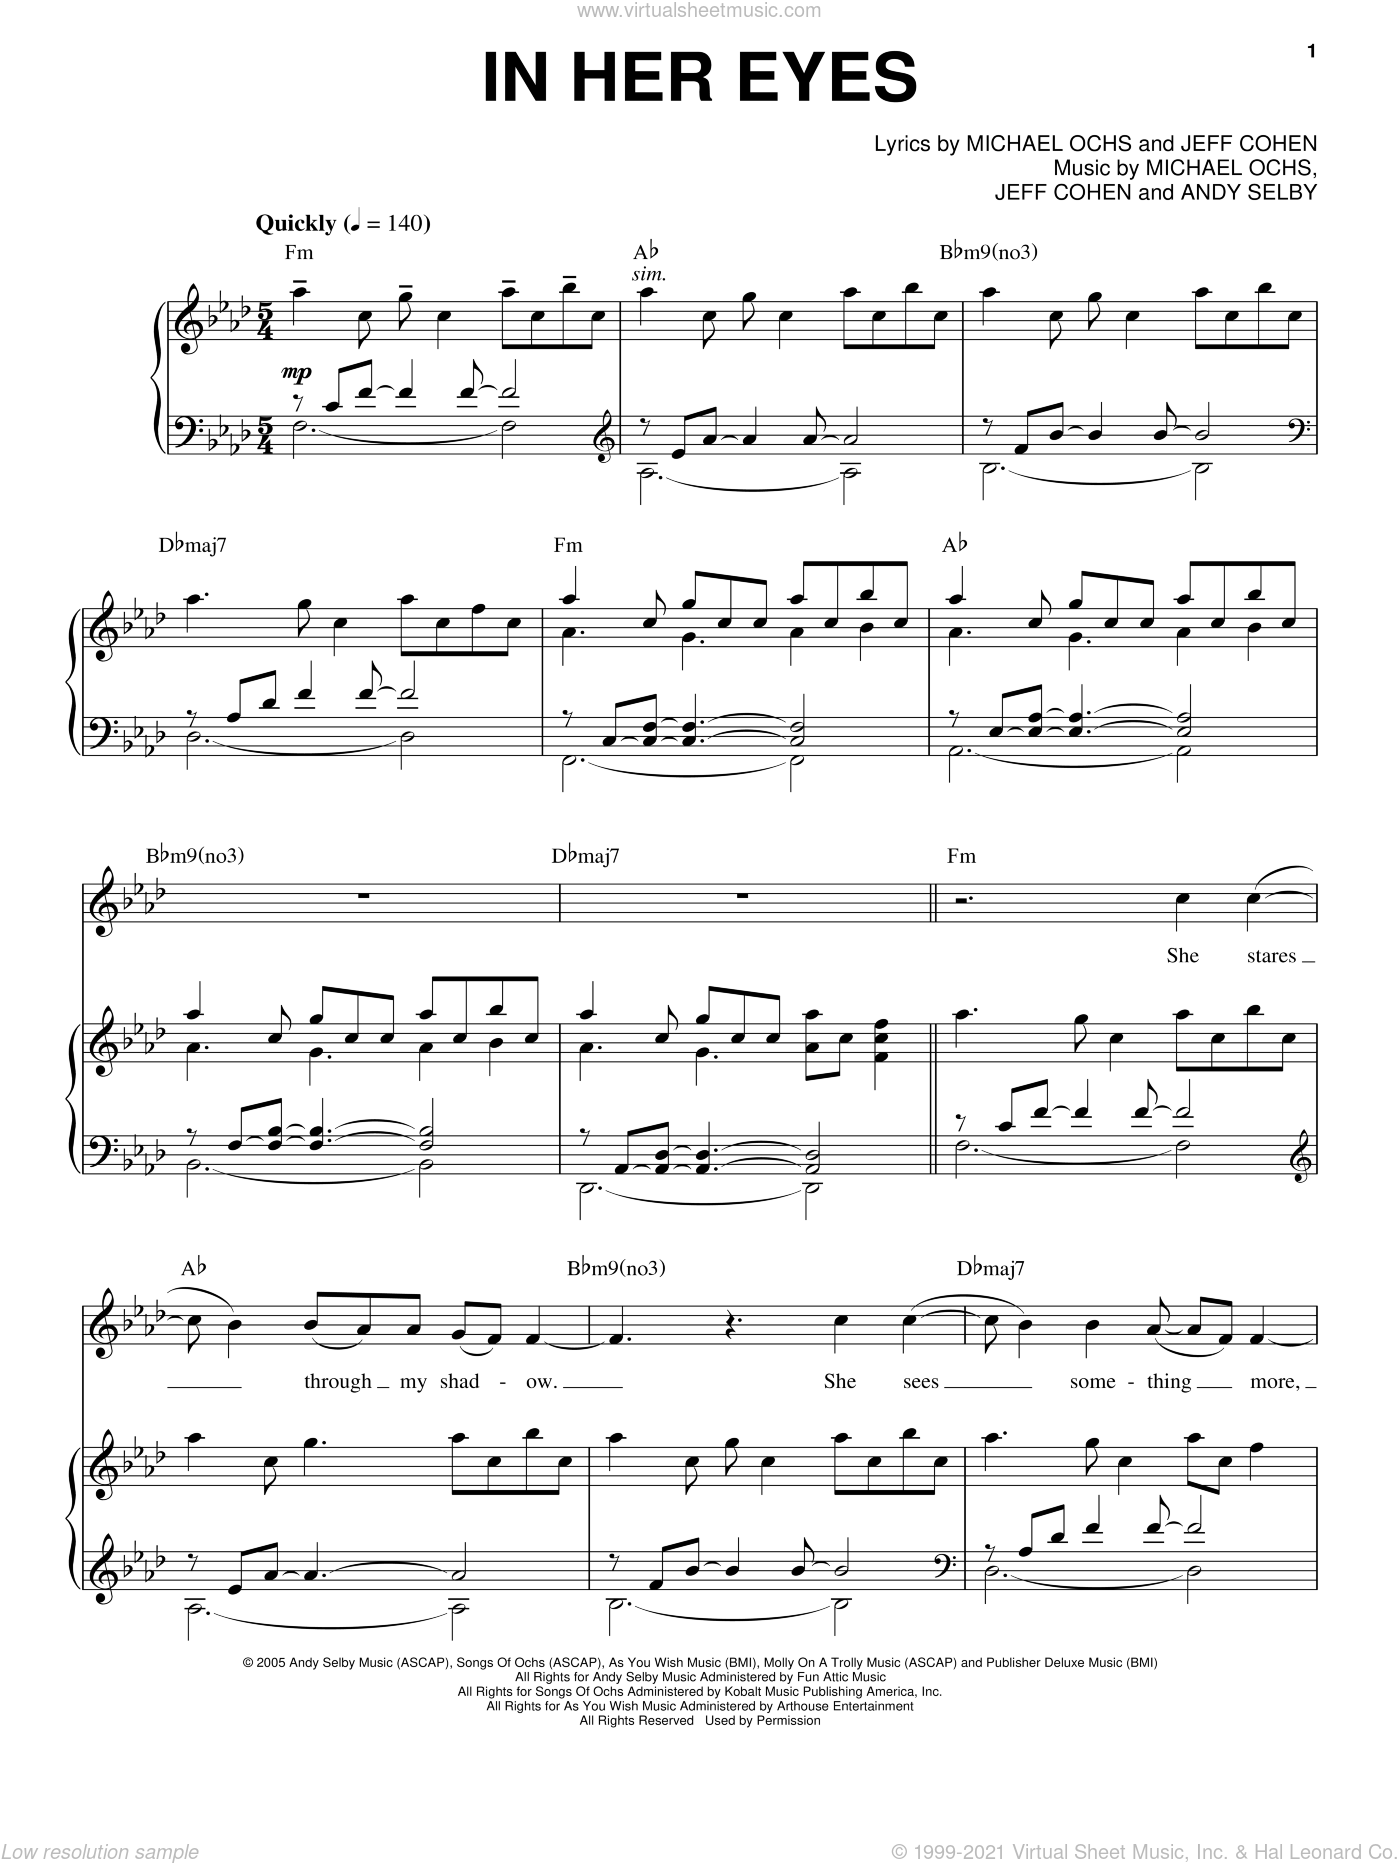 In Her Eyes sheet music for voice and piano by Michael Ochs